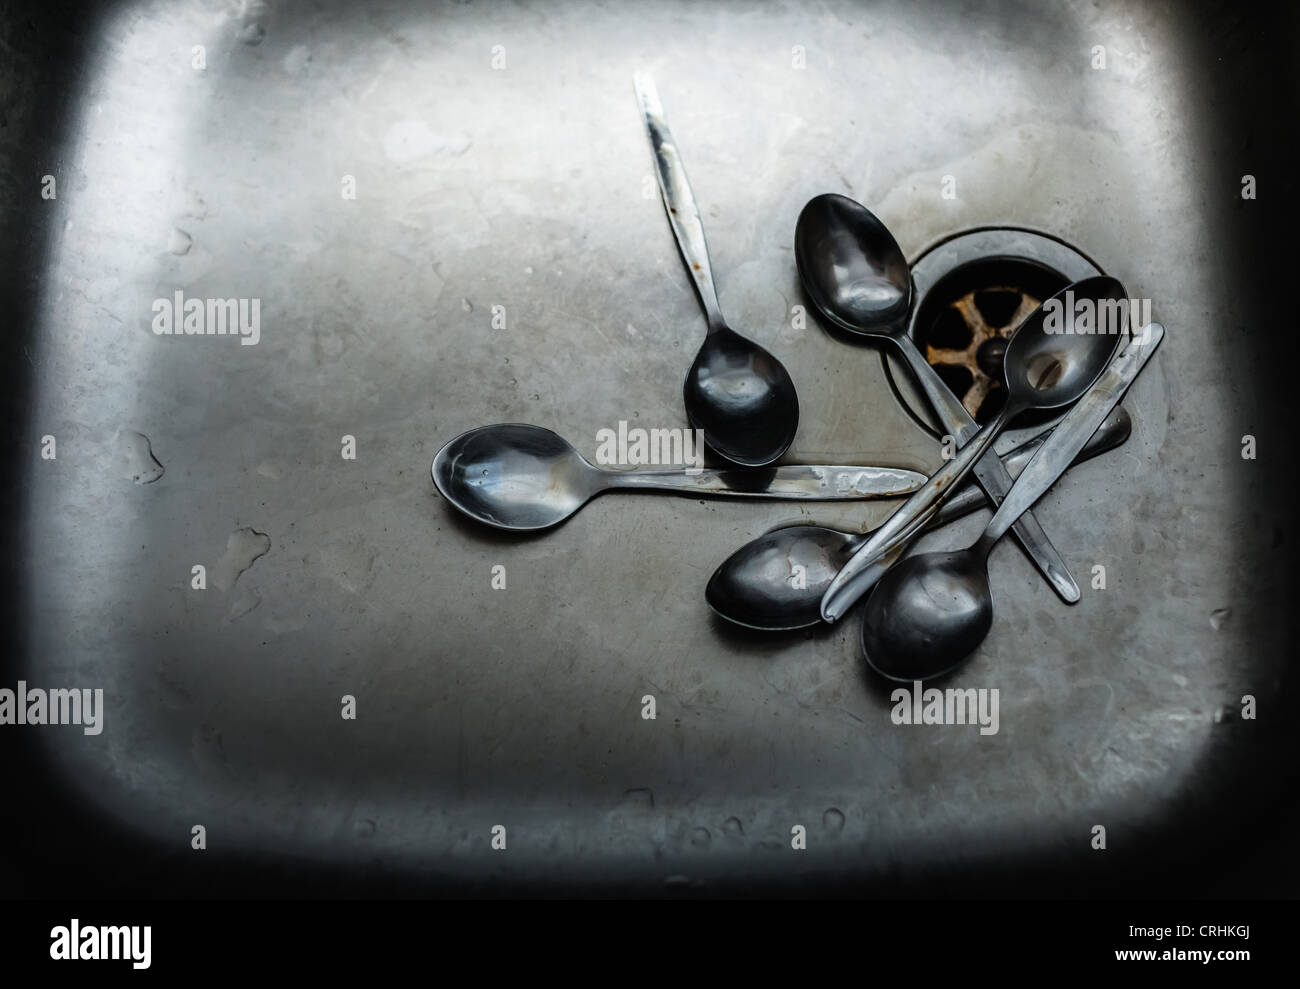 Pile of dirty spoons in sink - Stock Image